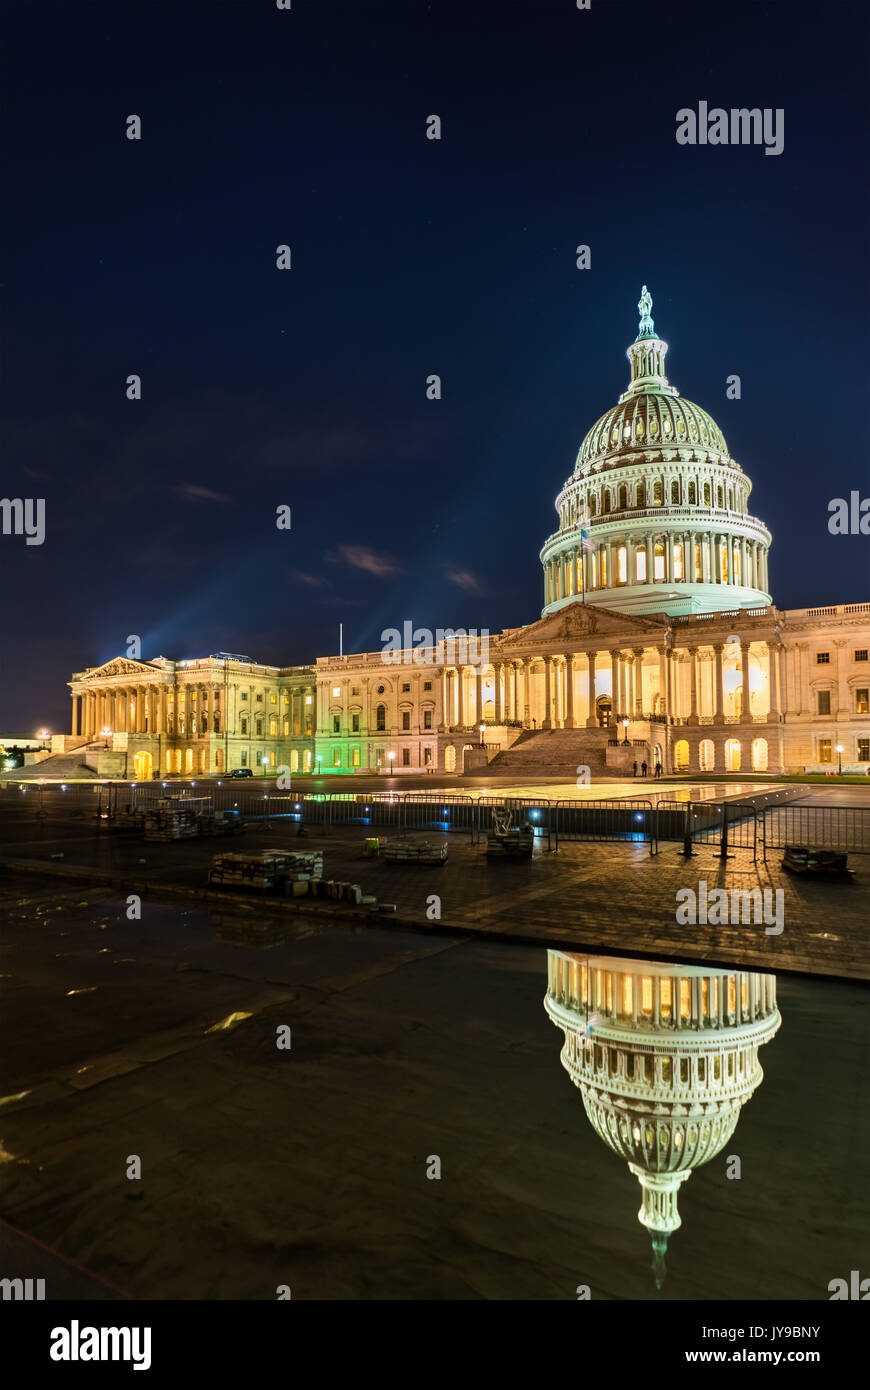 Le United States Capitol Building at night à Washington, DC Photo Stock